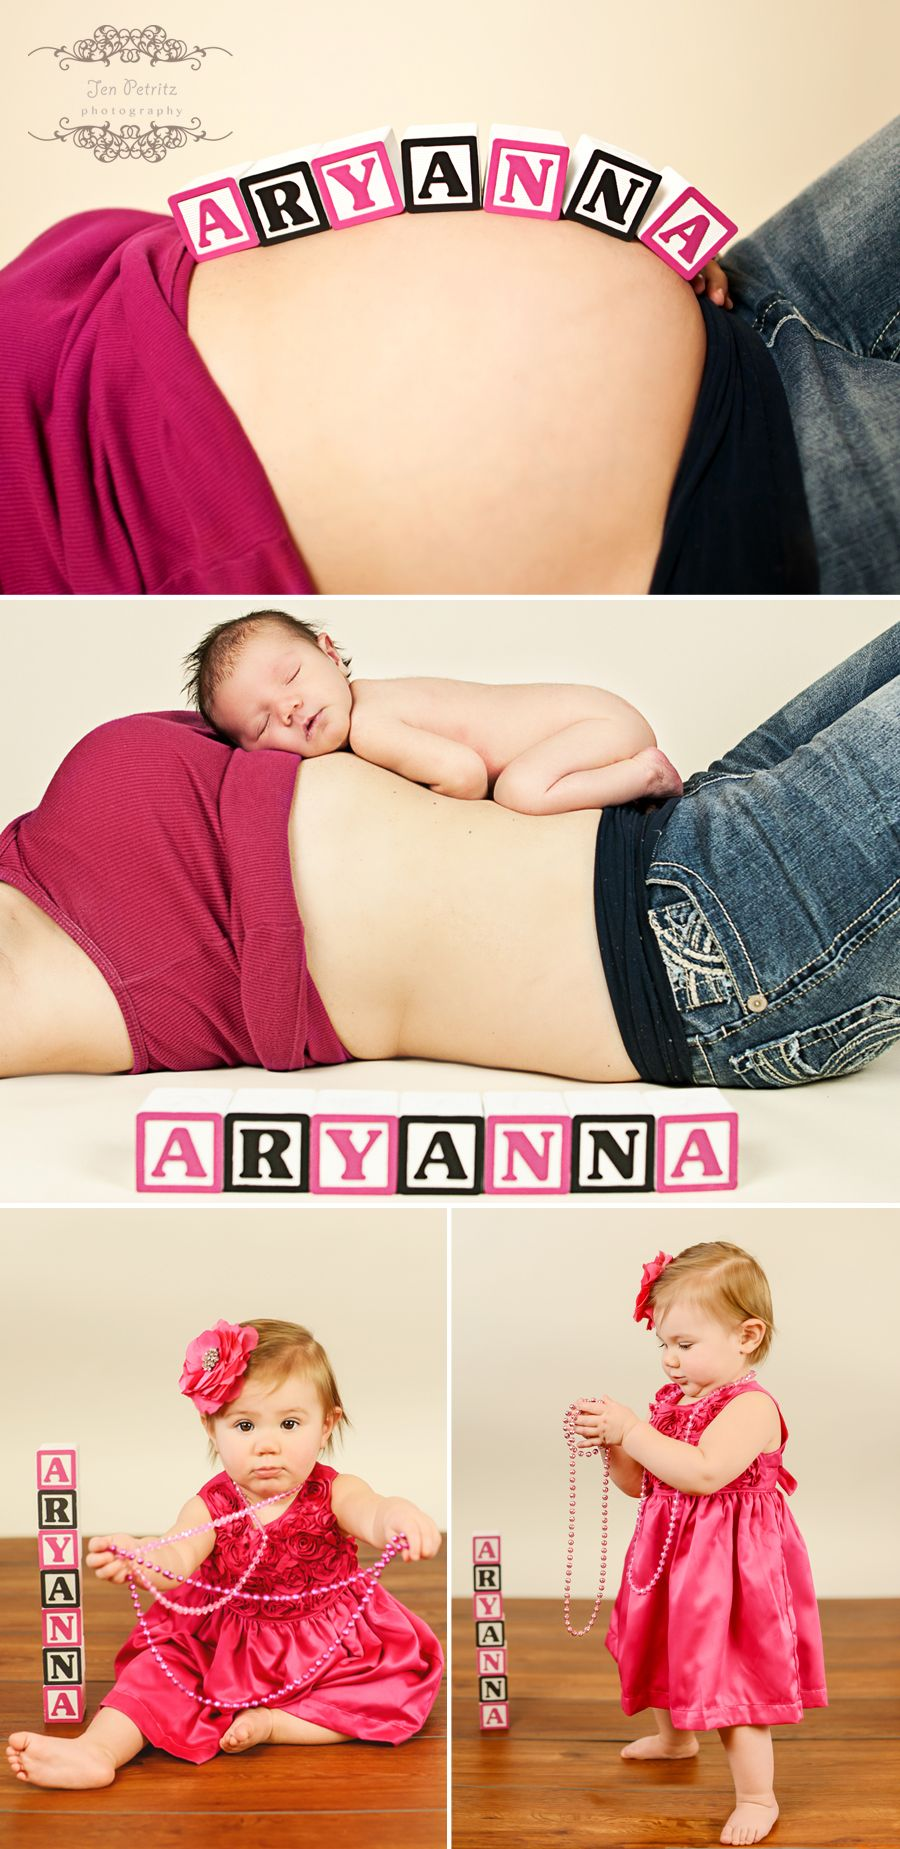 Amazing how these little creatures fit into our bodies. Cute photo ideas!